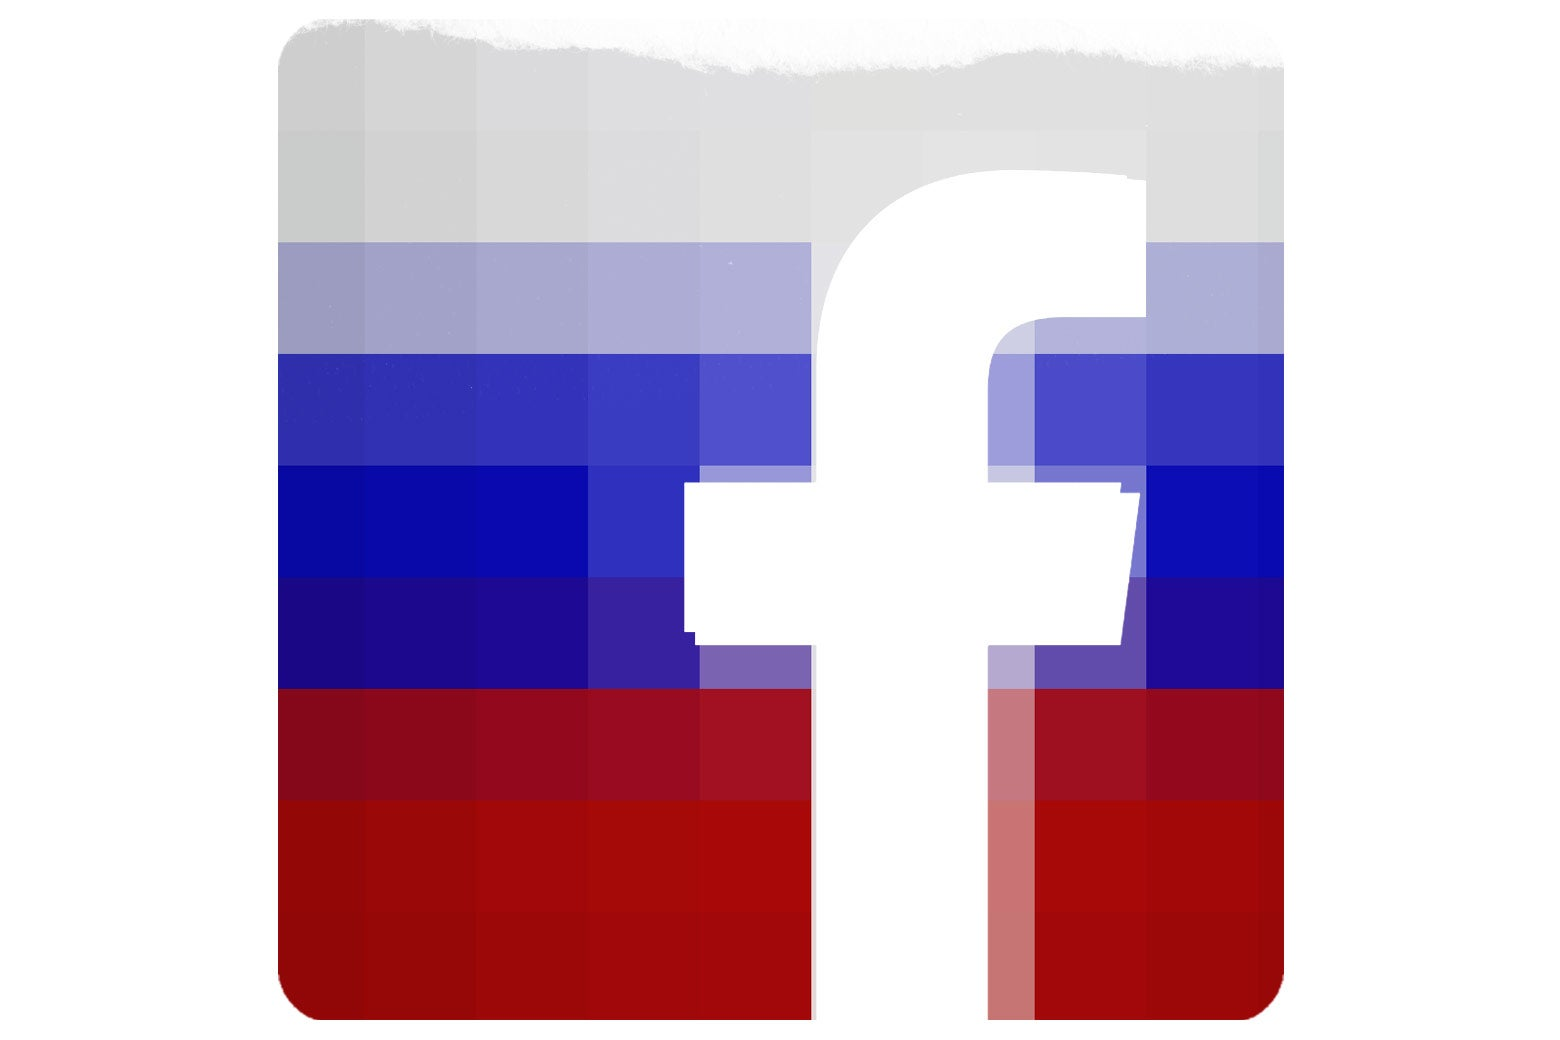 The Facebook logo fused with a Russian flag